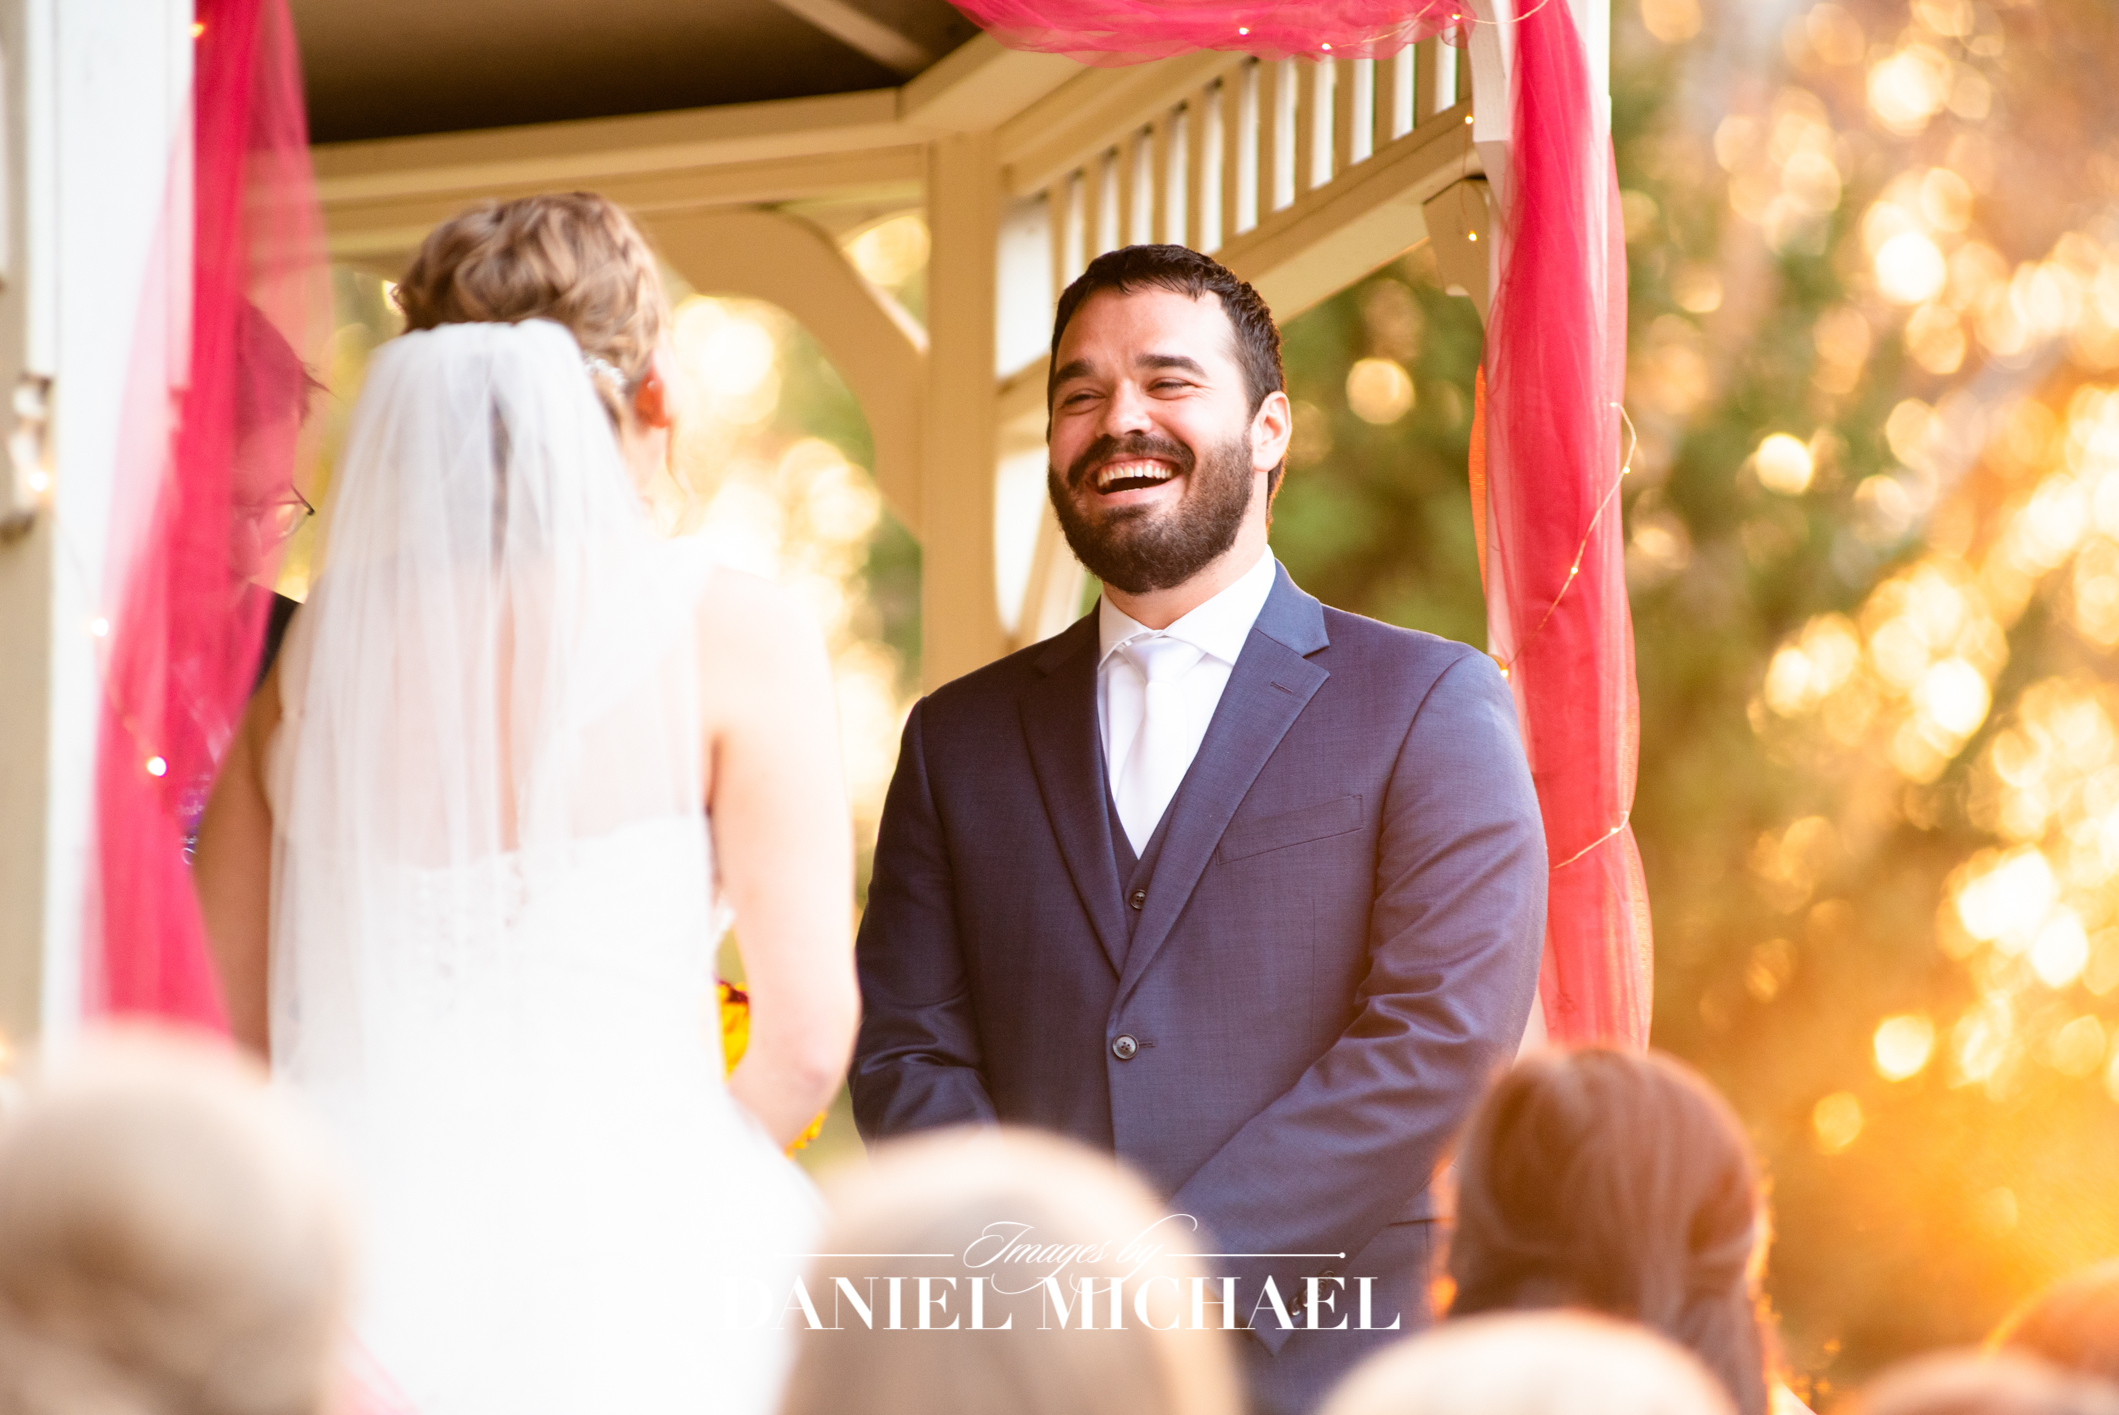 Noryln Manor Wedding Venue Ceremony Photography